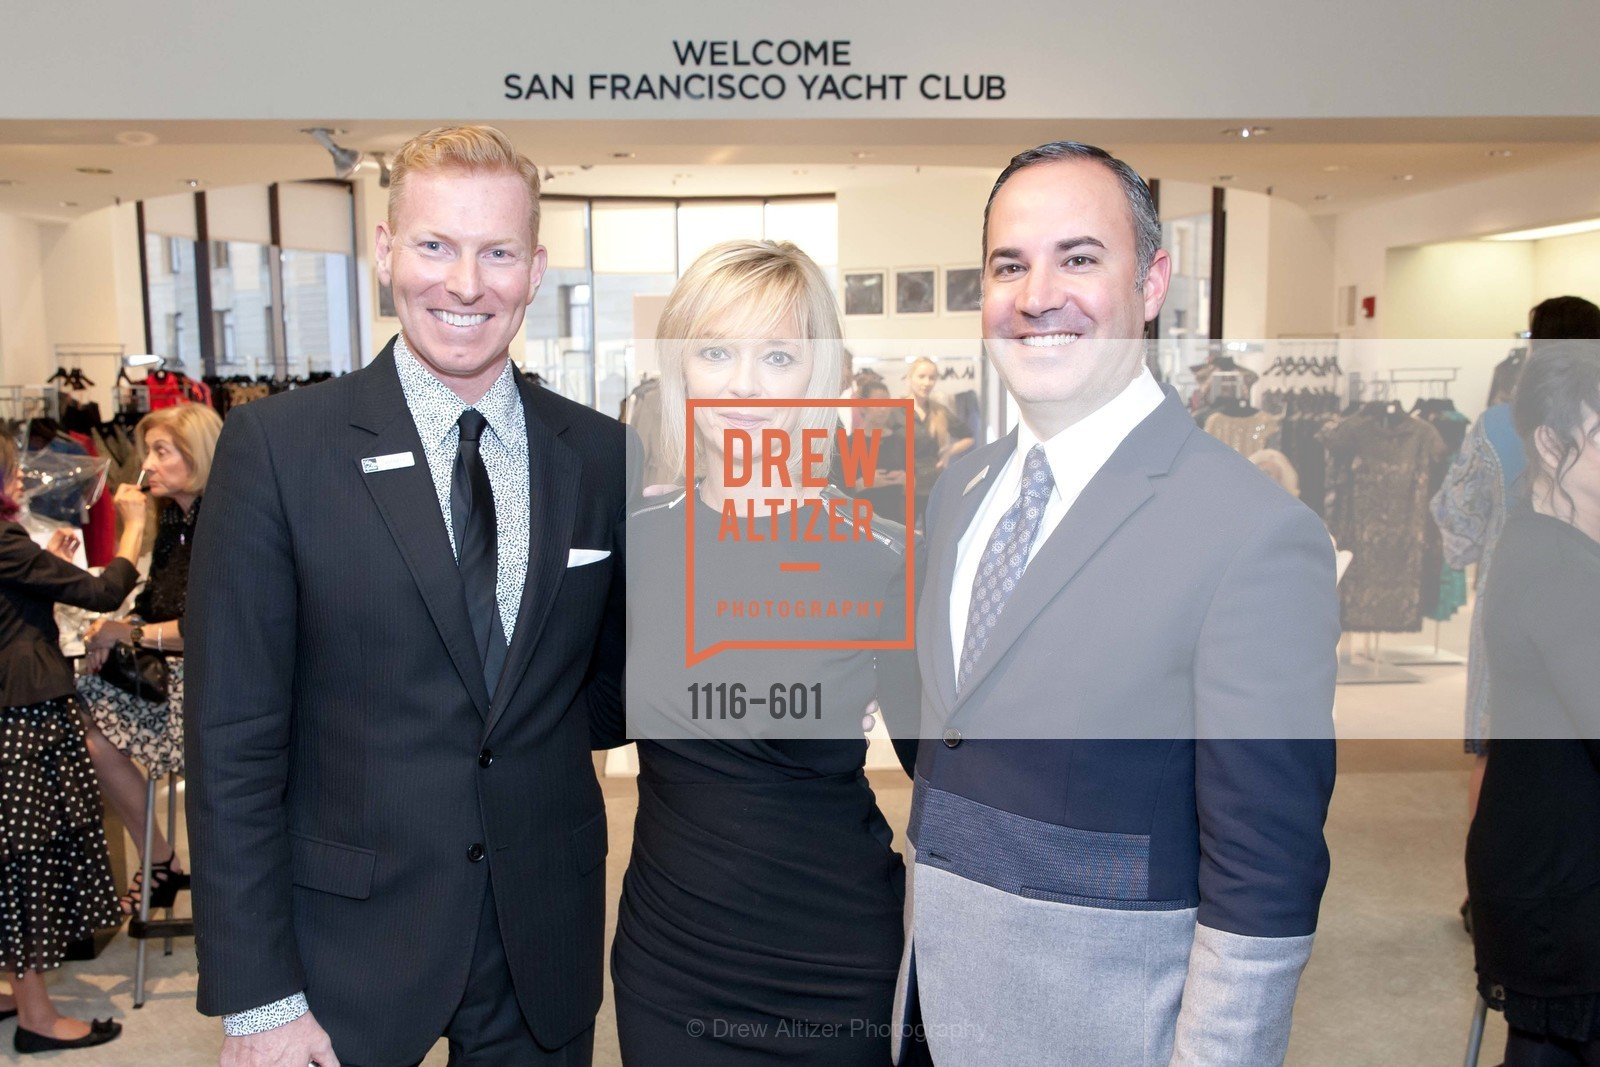 Randy Moore, Avril Graham, Robert Arnold-Kraft, SAKS FIFTH AVENUE and HARPER'S BAZAAR Host the San Francisco Yacht Club, US, October 9th, 2014,Drew Altizer, Drew Altizer Photography, full-service agency, private events, San Francisco photographer, photographer california